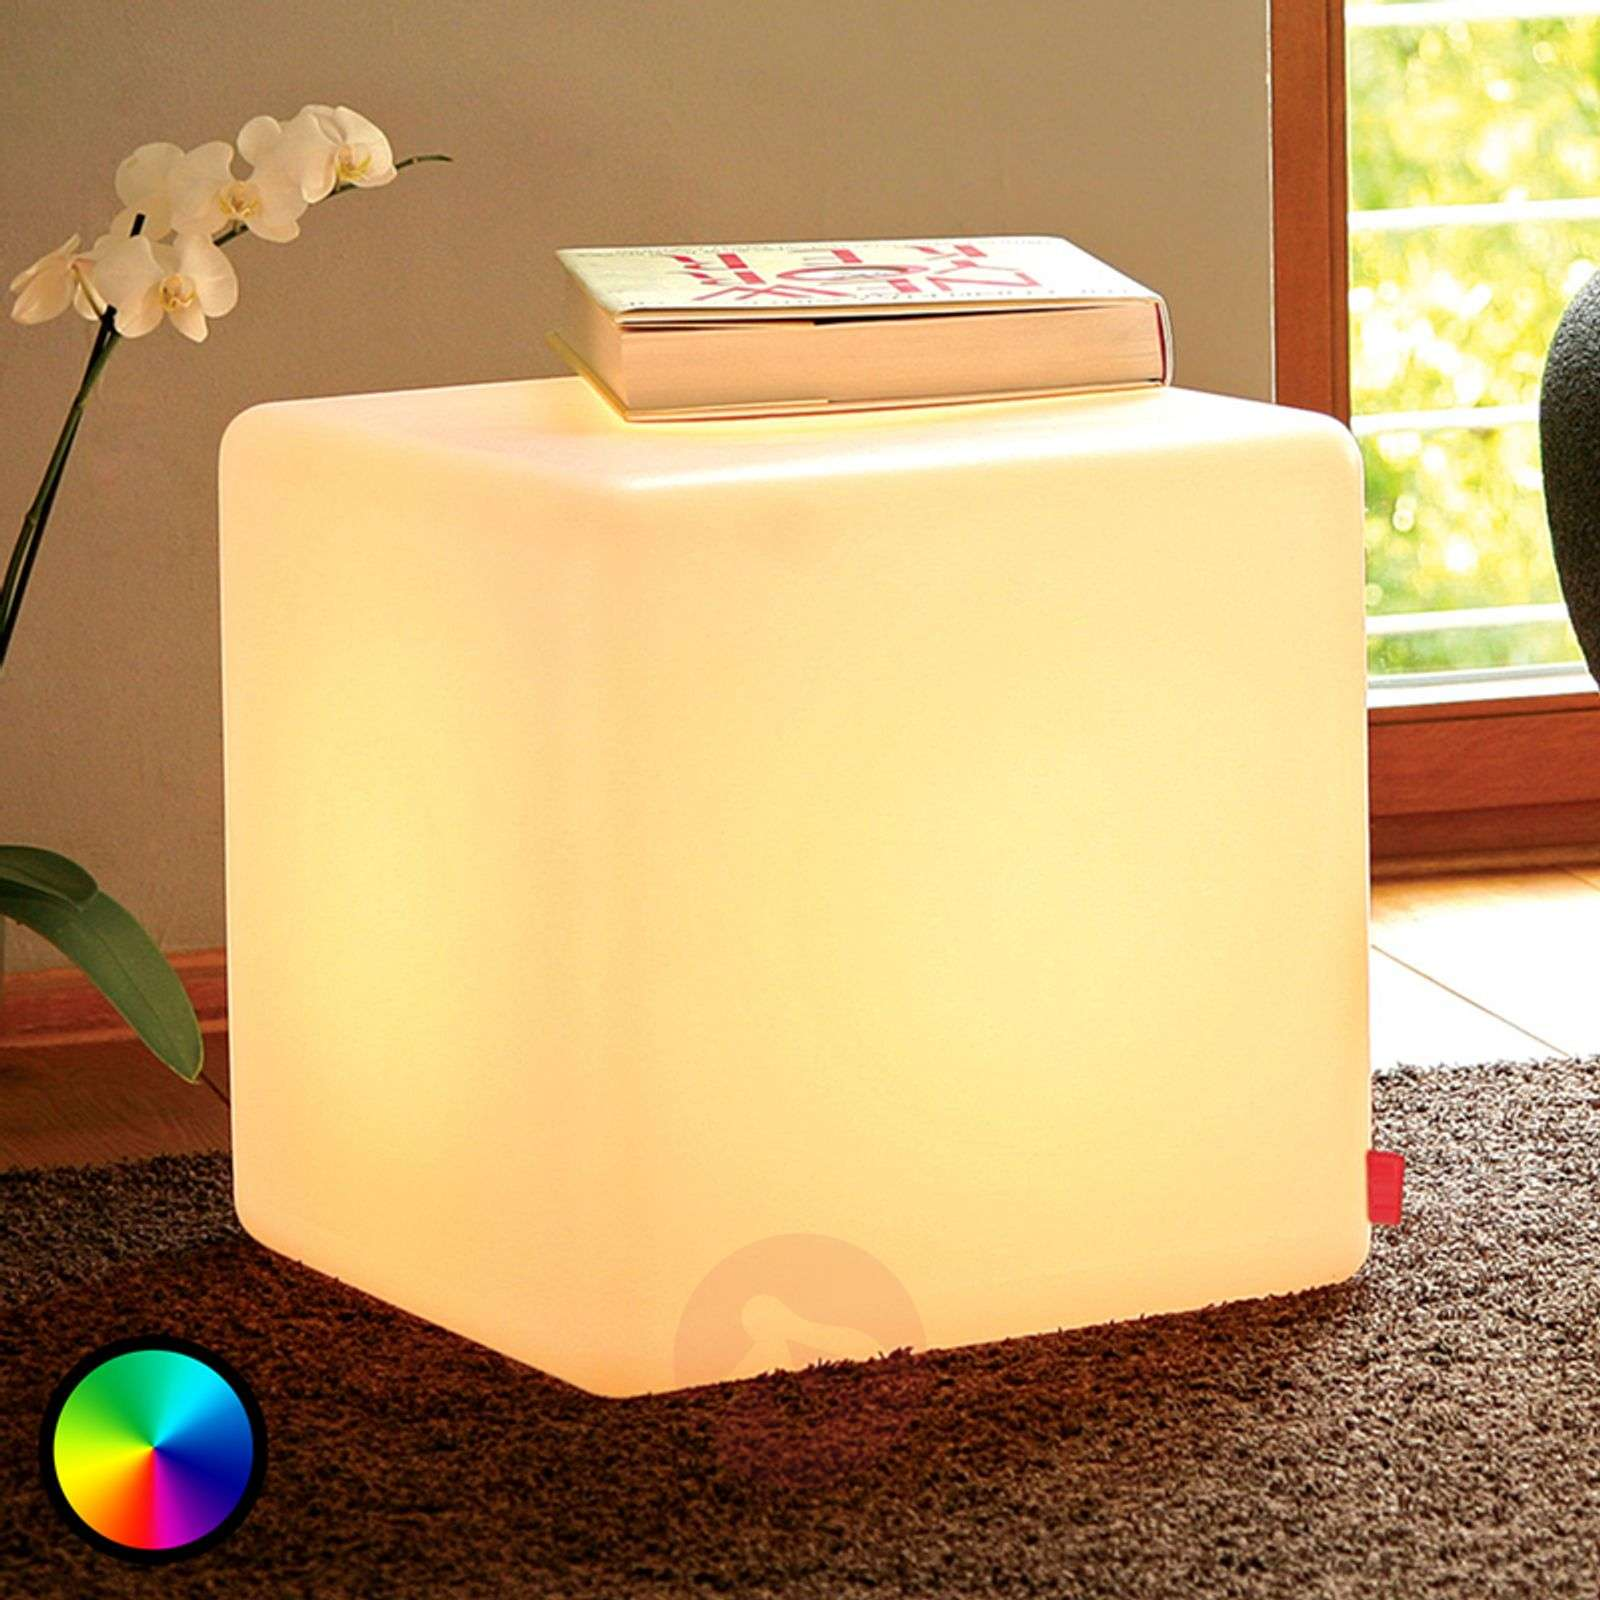 Useful decorative light CUBE Indoor LED-6537021-01